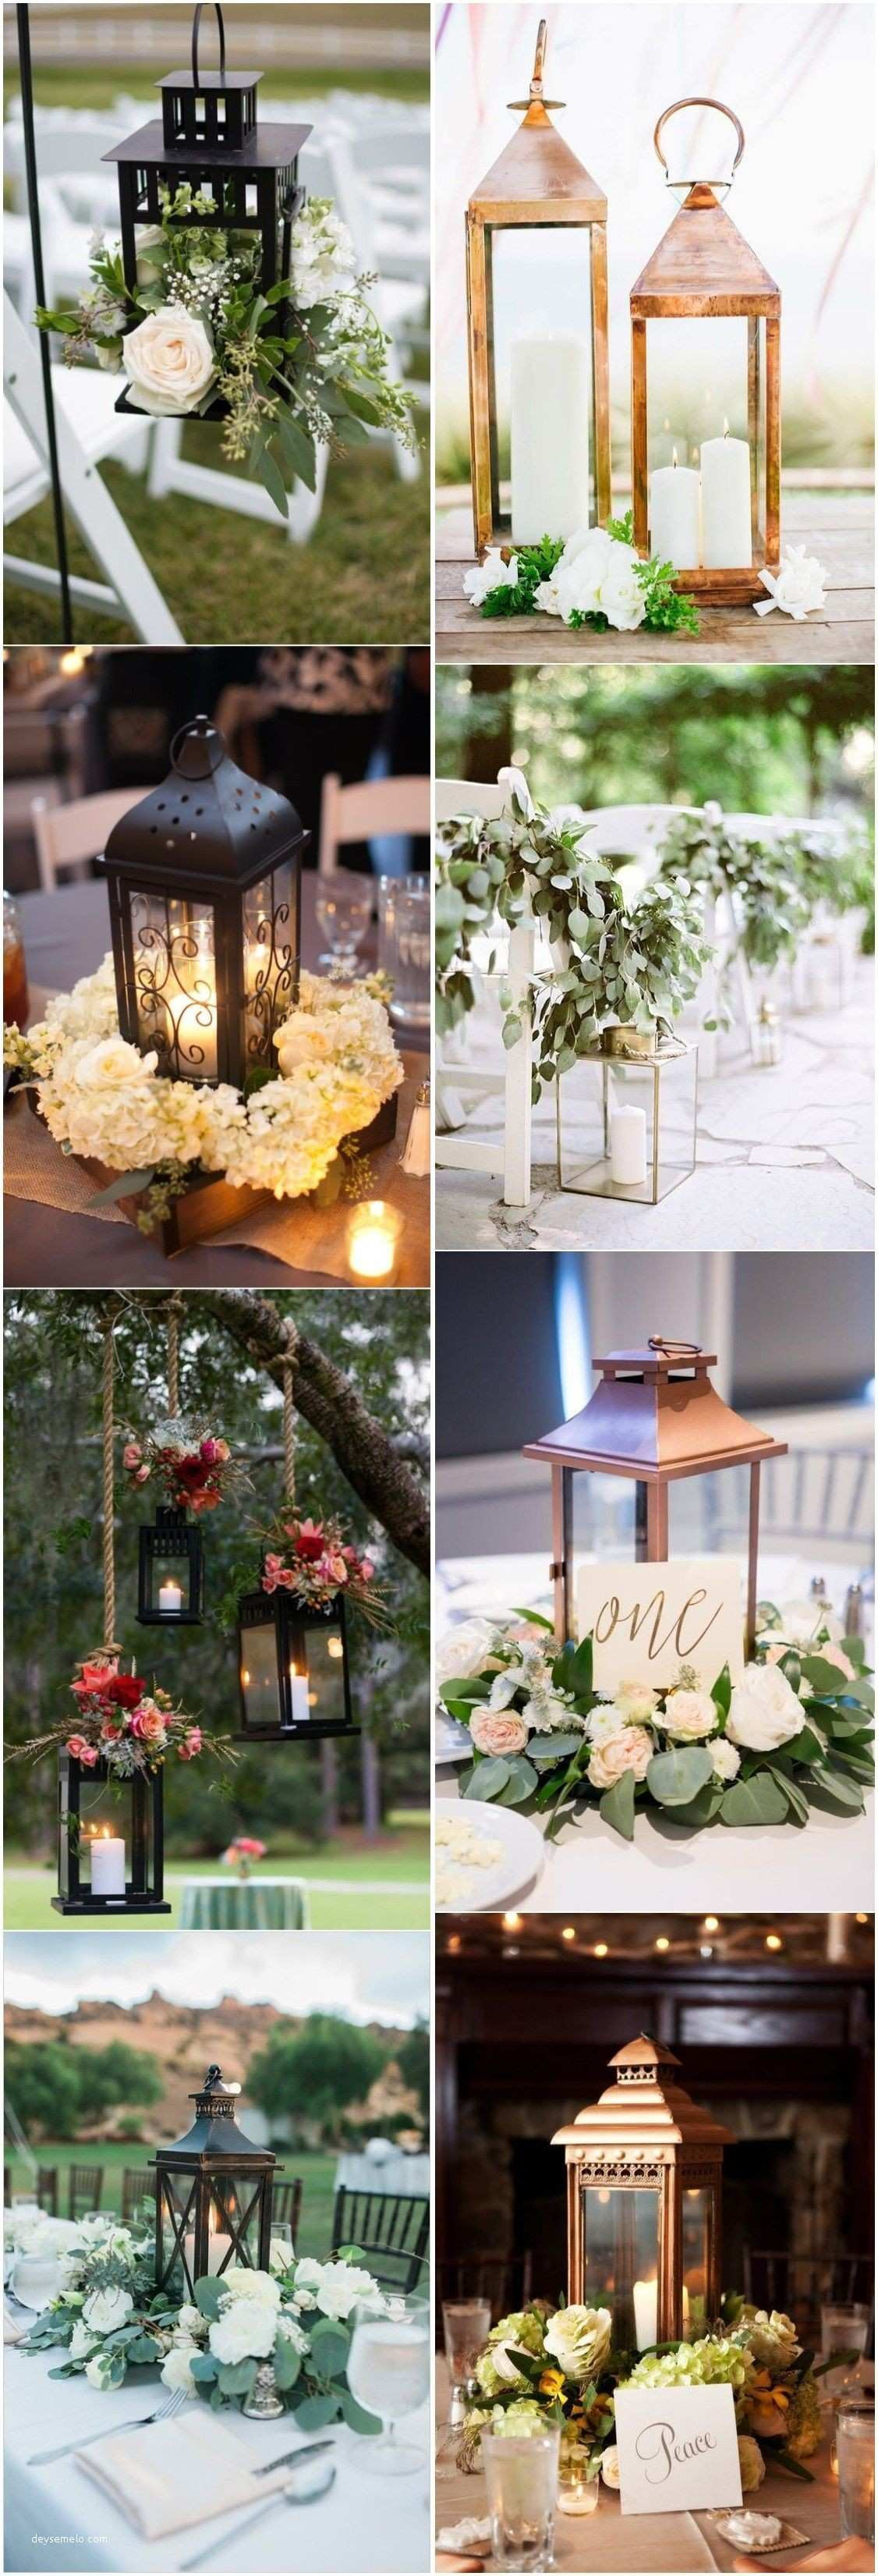 vase with flowers and lights of elegant decorative lanterns for weddings of diy home decor vaseh throughout amazing decorative lanterns for weddings with 20 rustic lantern wedding decoration ideas to light up your